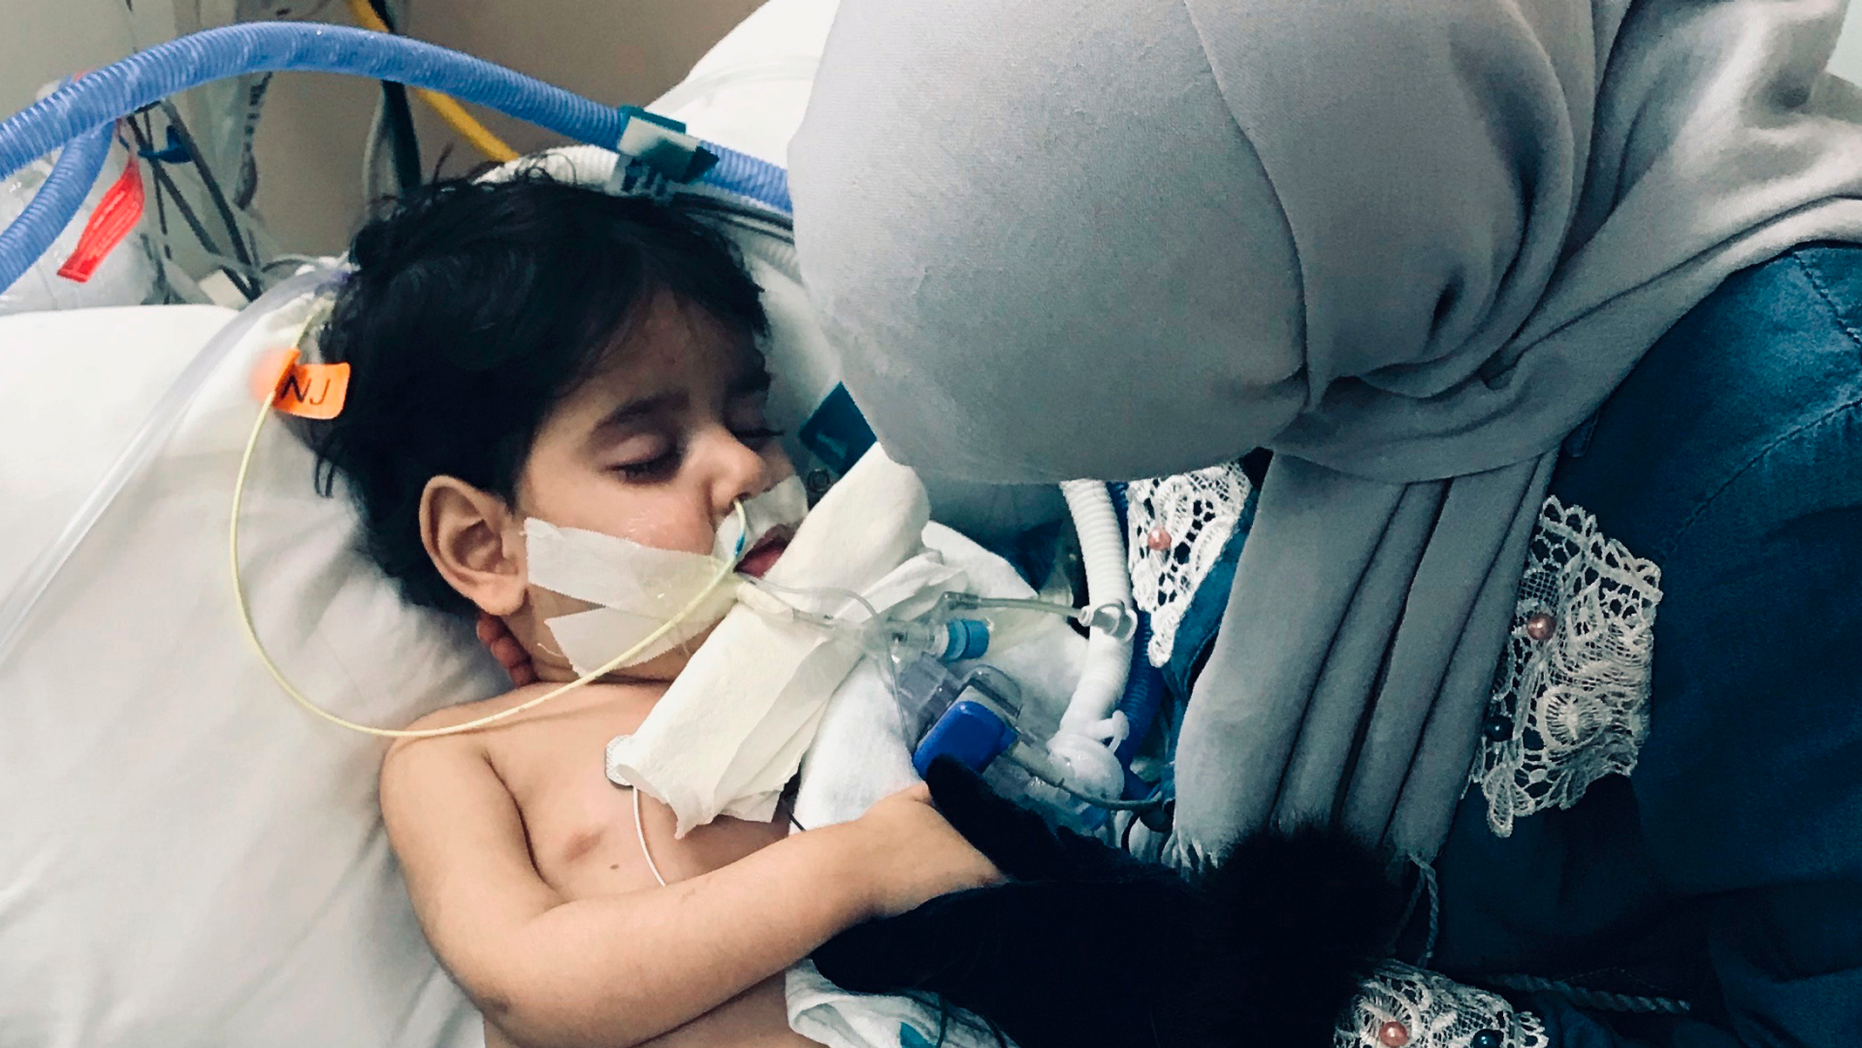 In this December 2018 photo released by the Council on American Islamic Relations, Sacramento Valley, Shaima Swileh, of Yemen, holds her dying 2-year old son Abdullah Hassan at UCSF Benioff Children's Hospital in Oakland, Calif. USA. The Council on American-Islamic Relations announced Friday, Dec. 28, 2018, that Abdullah died at the Oakland hospital, where his father Ali Hassan brought him in the fall to get treatment for a genetic brain disorder. Swileh, who is not an American citizen, sued the Trump administration to let her into the country to be with the ailing boy. (Council on American Islamic Relations, Sacramento Valley via AP)